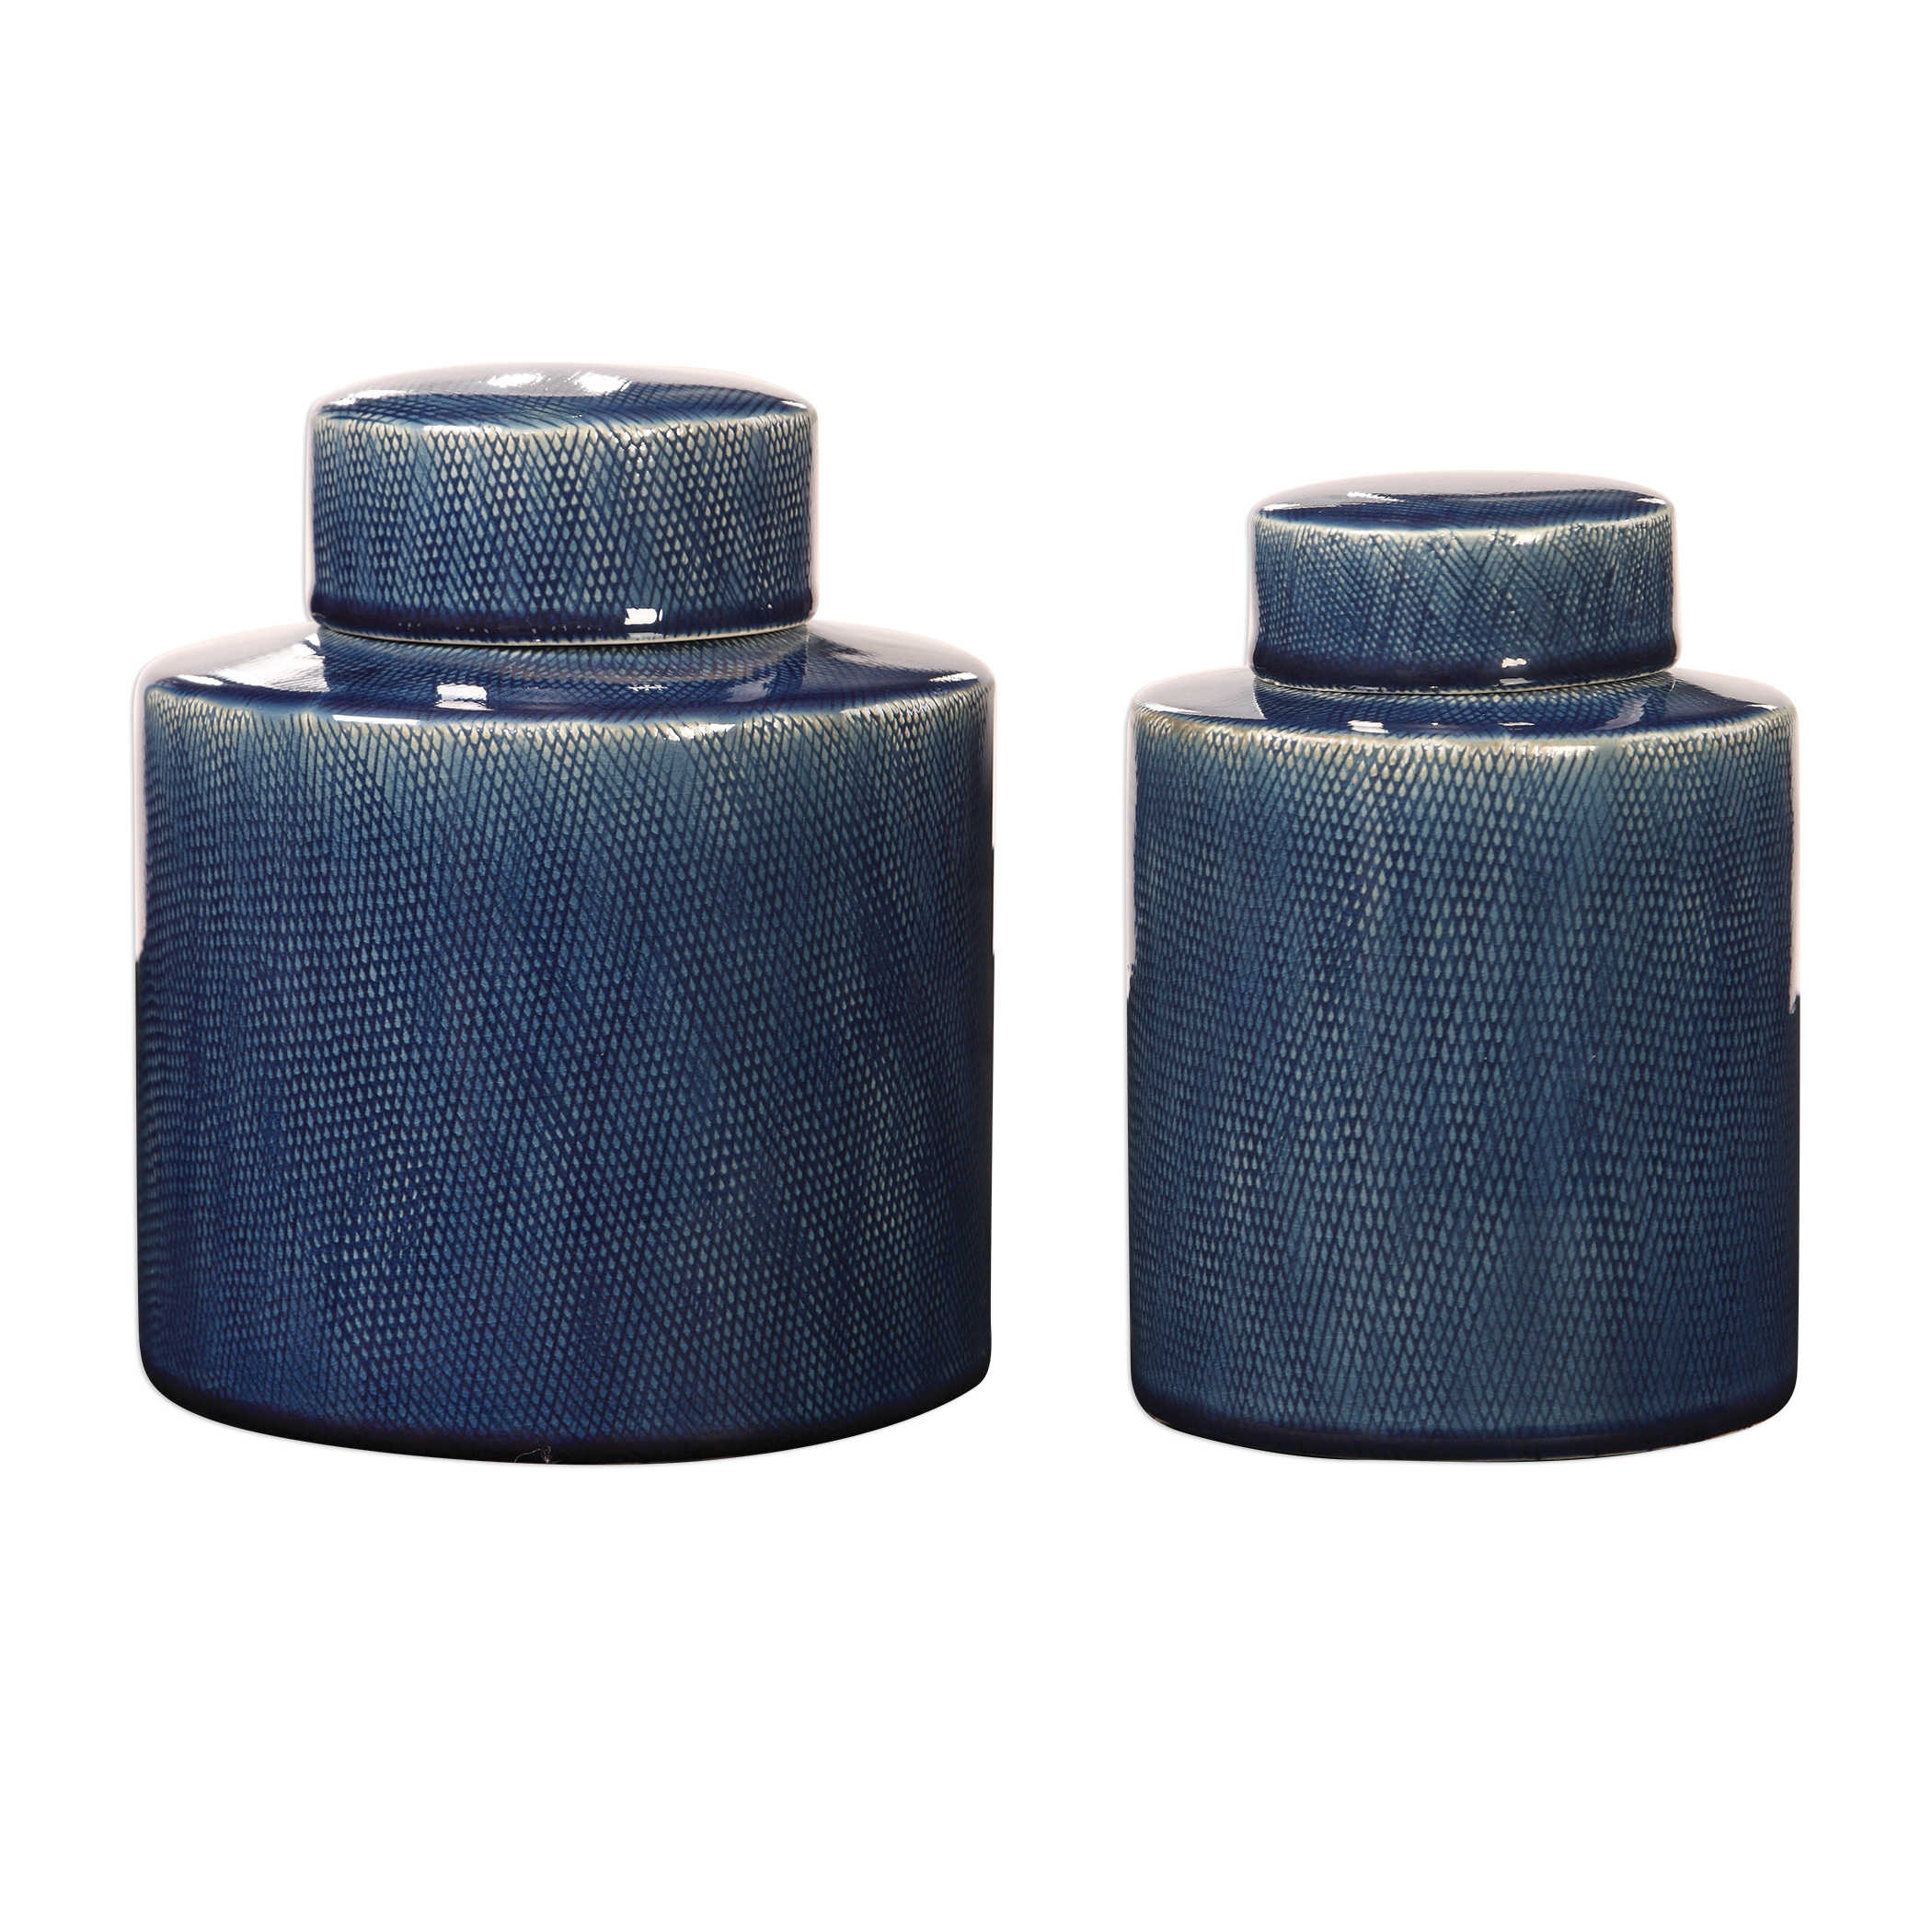 Blue Container with lid-Lg. $94.00 Sm. $72.00